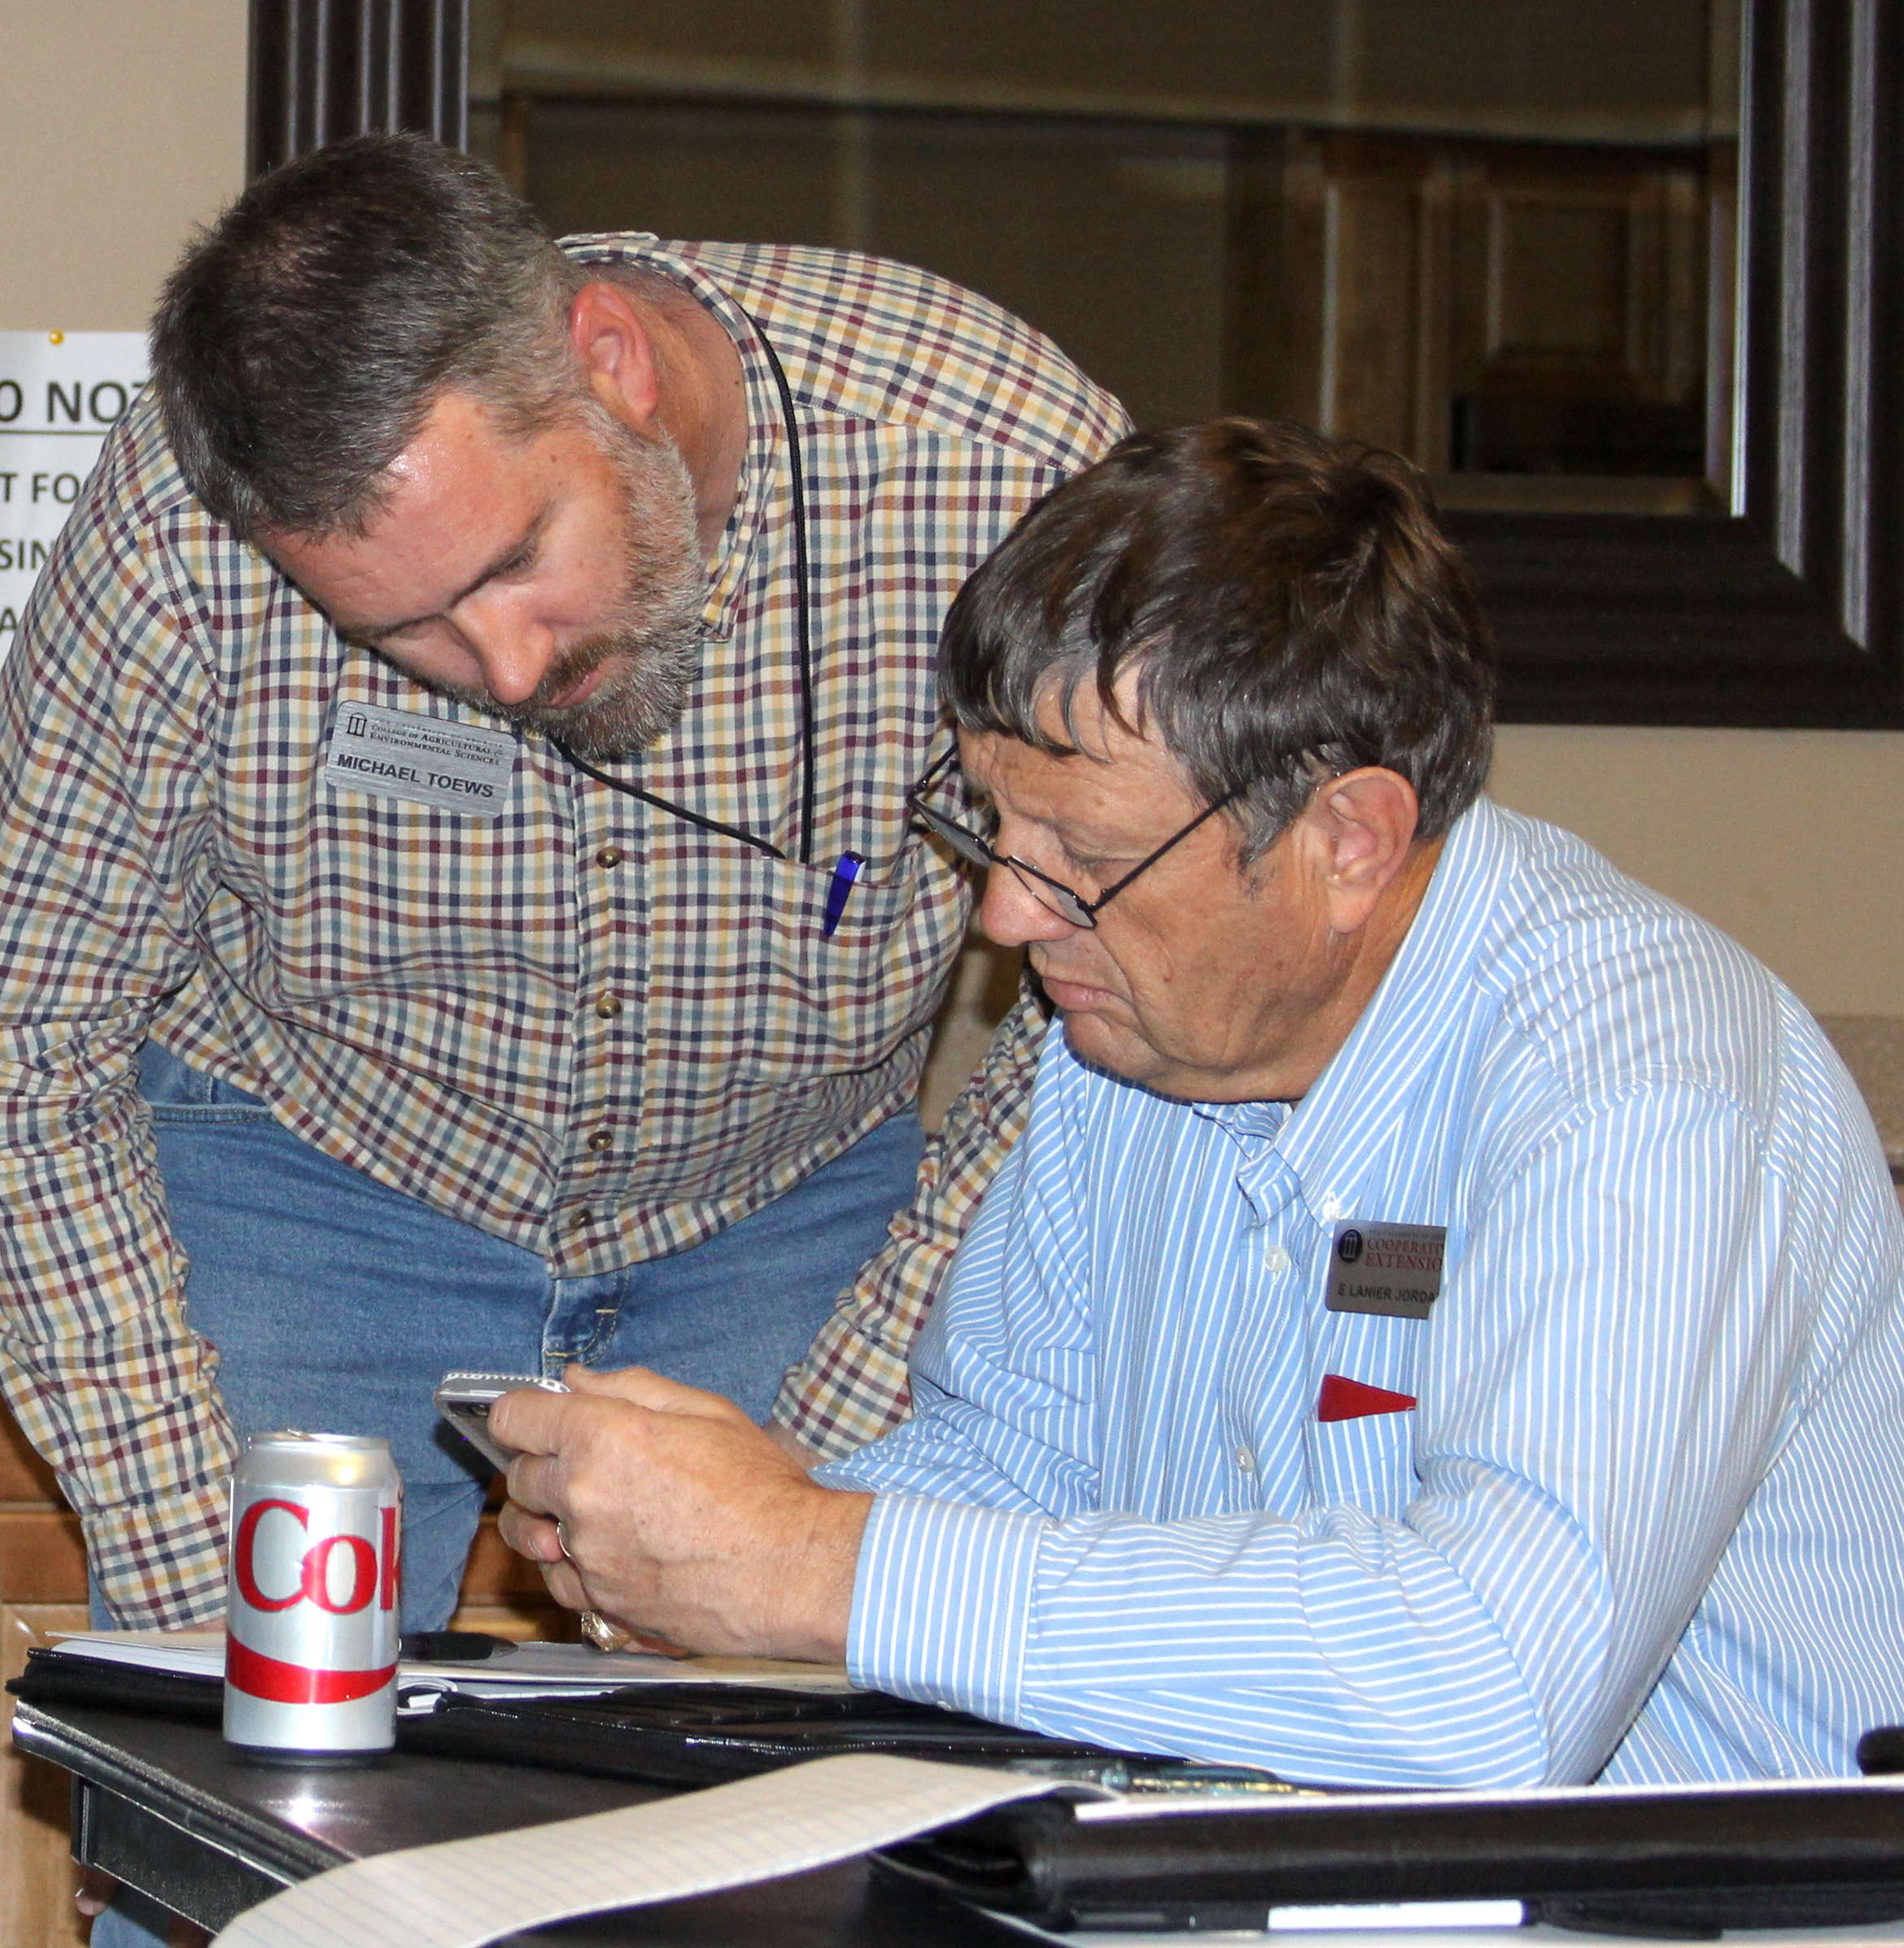 Farmers can get easy access to the latest research-based agriculture advice through a number of mobile apps available from the University of Georgia and other land-grant universities. UGA entomologist Michael Toews helps create these apps and holds workshops to share them with Georgia county agents and growers. Toews is shown (standing) sharing a mobile app with UGA Extension agent Lanier Jordan.